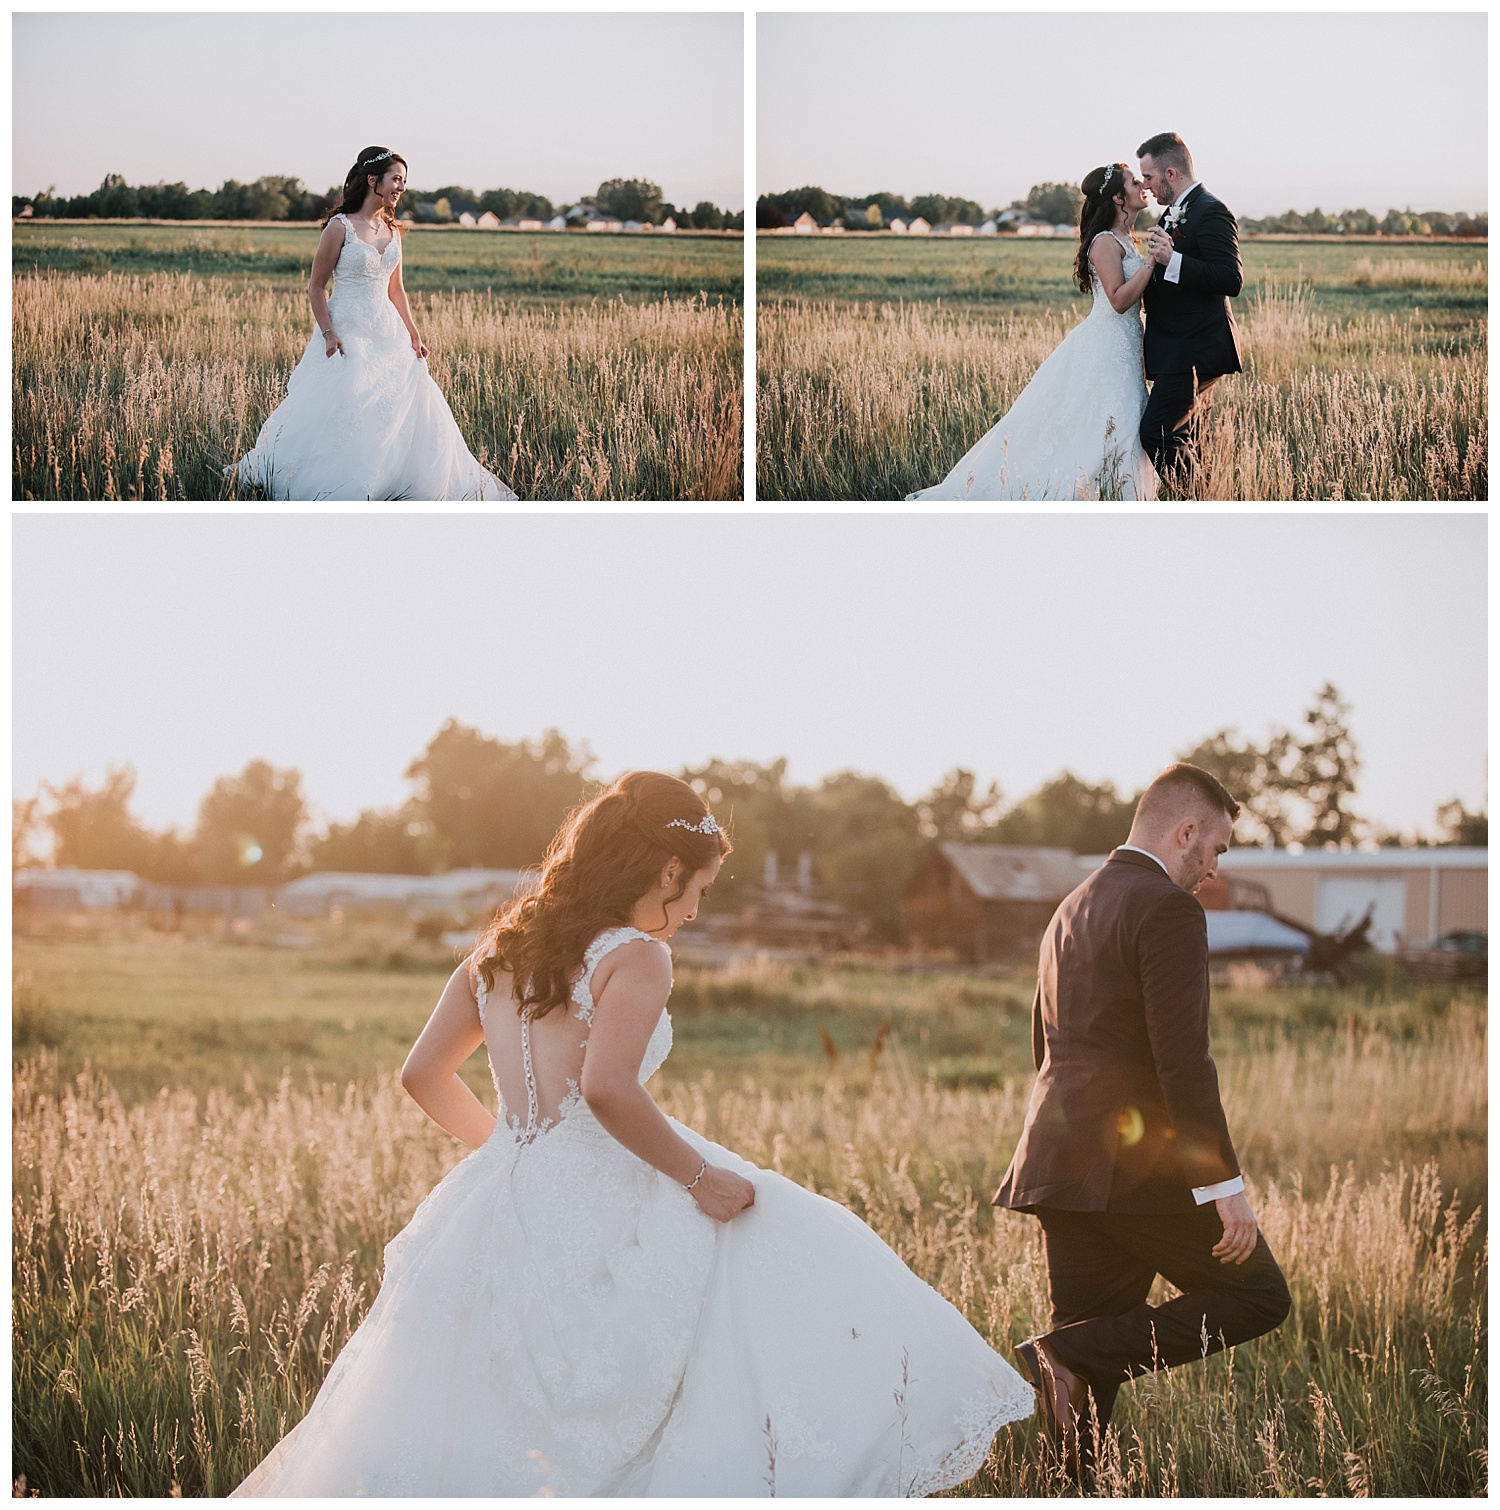 Brookside_Gardens_Colorado_Wedding_Photography_Apollo_Fields_41.jpg